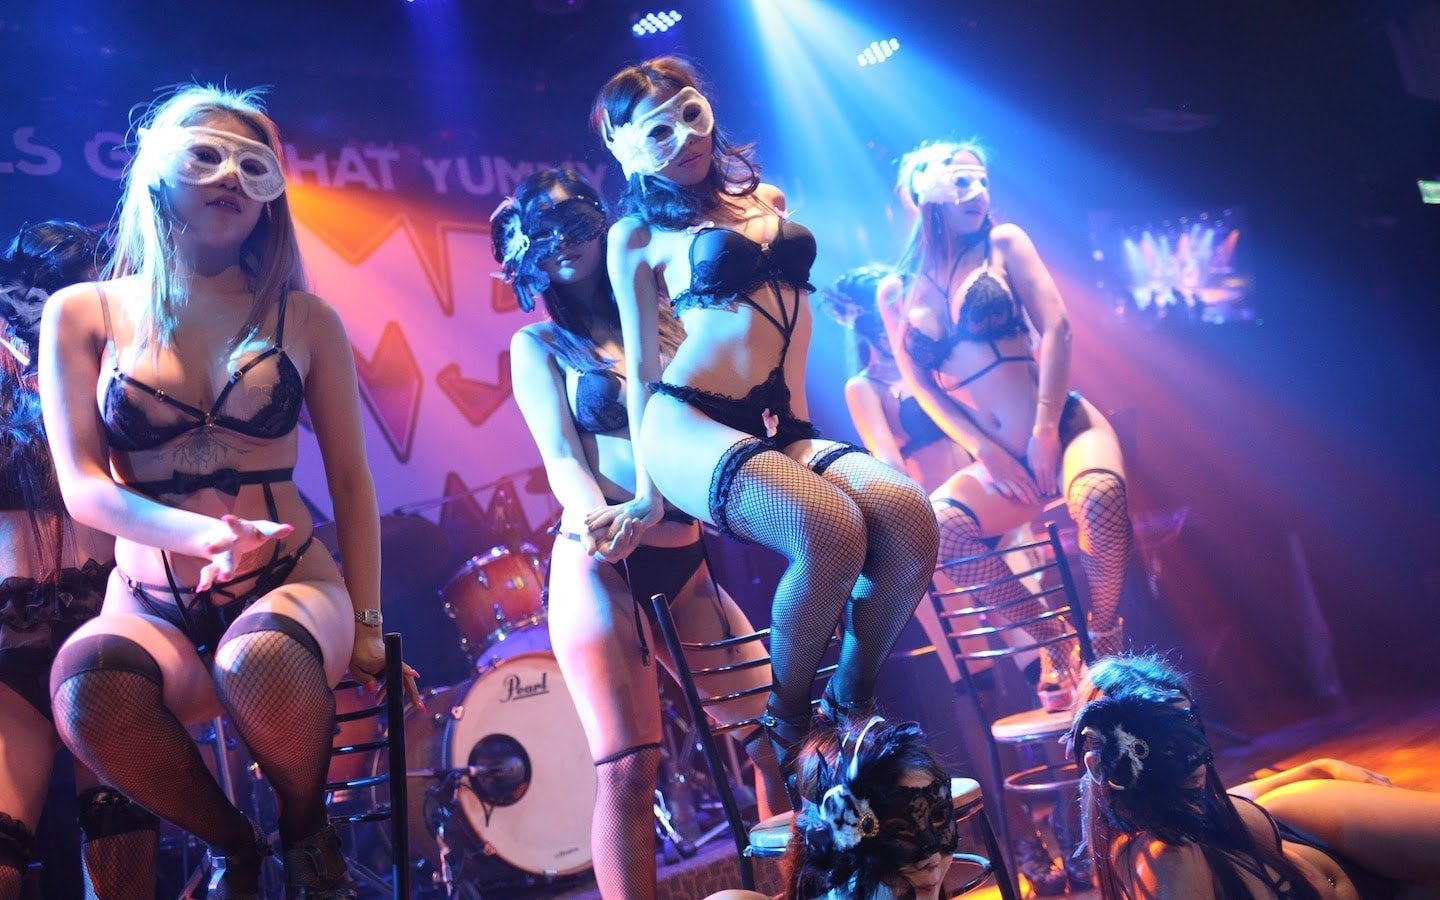 erotic shows at a club in Bangkok